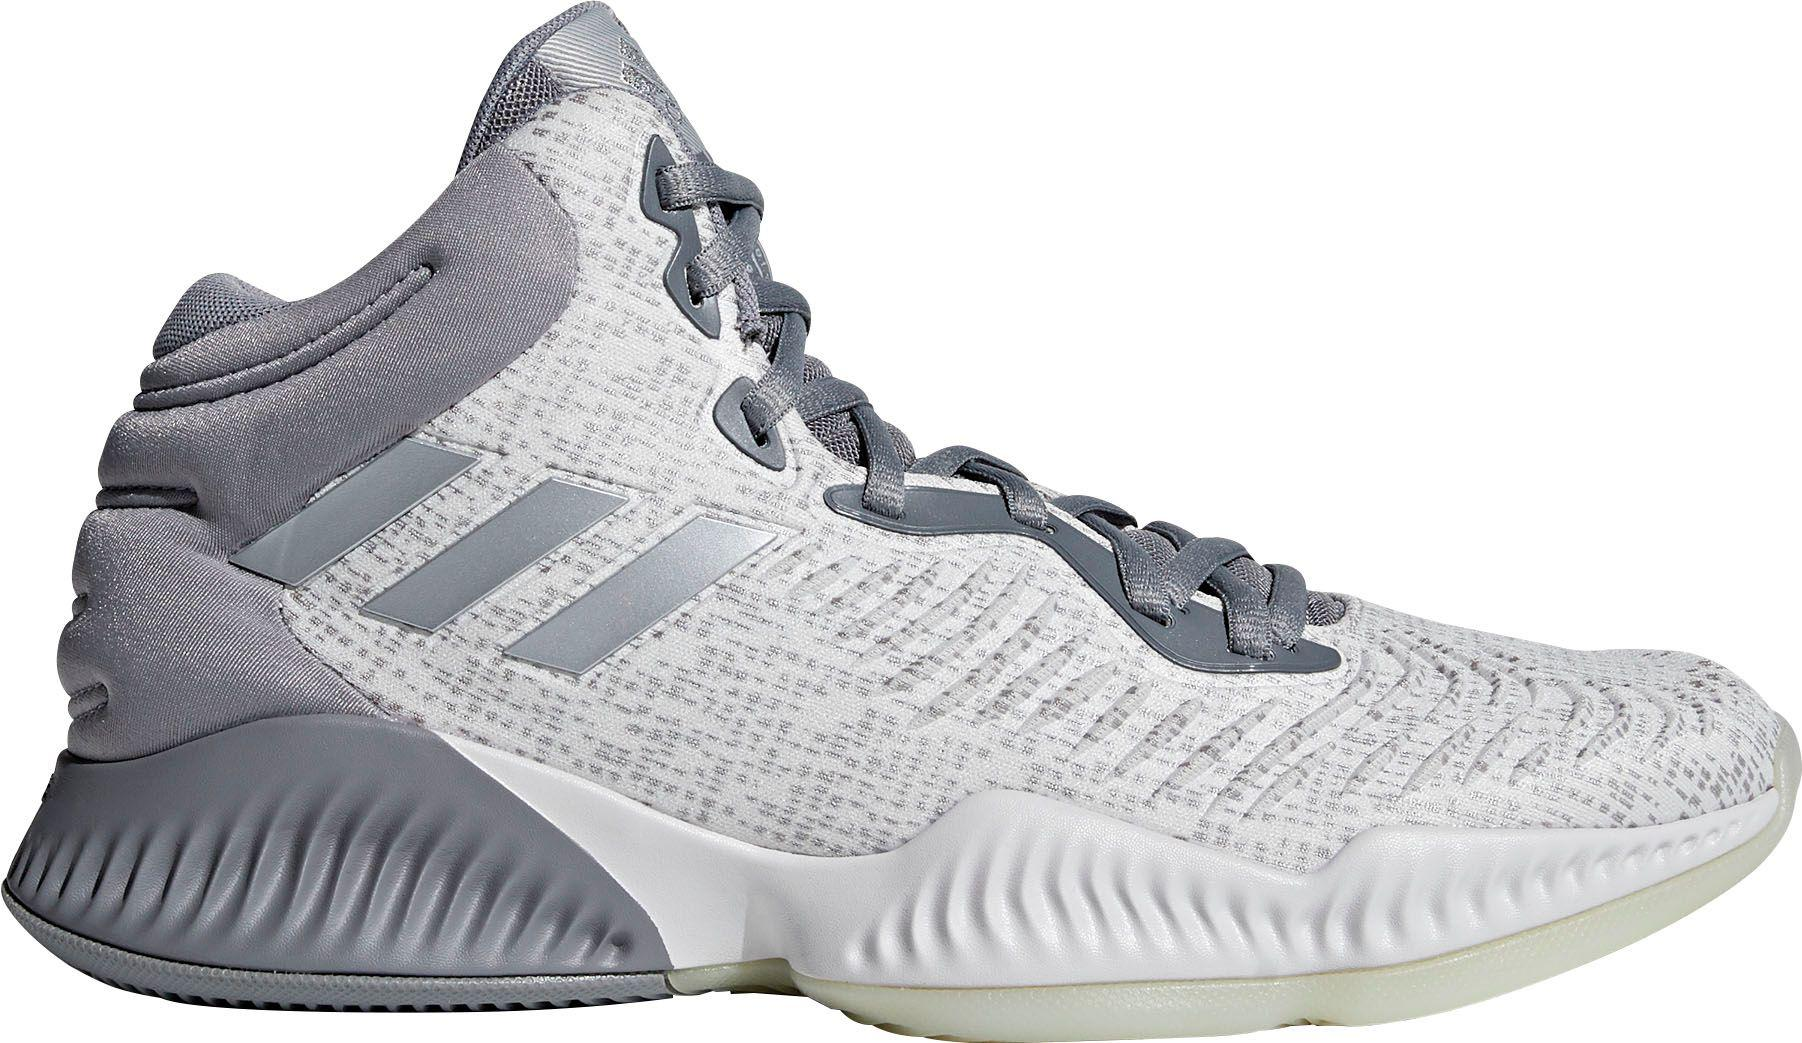 fef1e4ba312a ... best sneakers 9a084 f6b00 Adidas - Gray Mad Bounce 2018 Basketball Shoes  for Men - Lyst